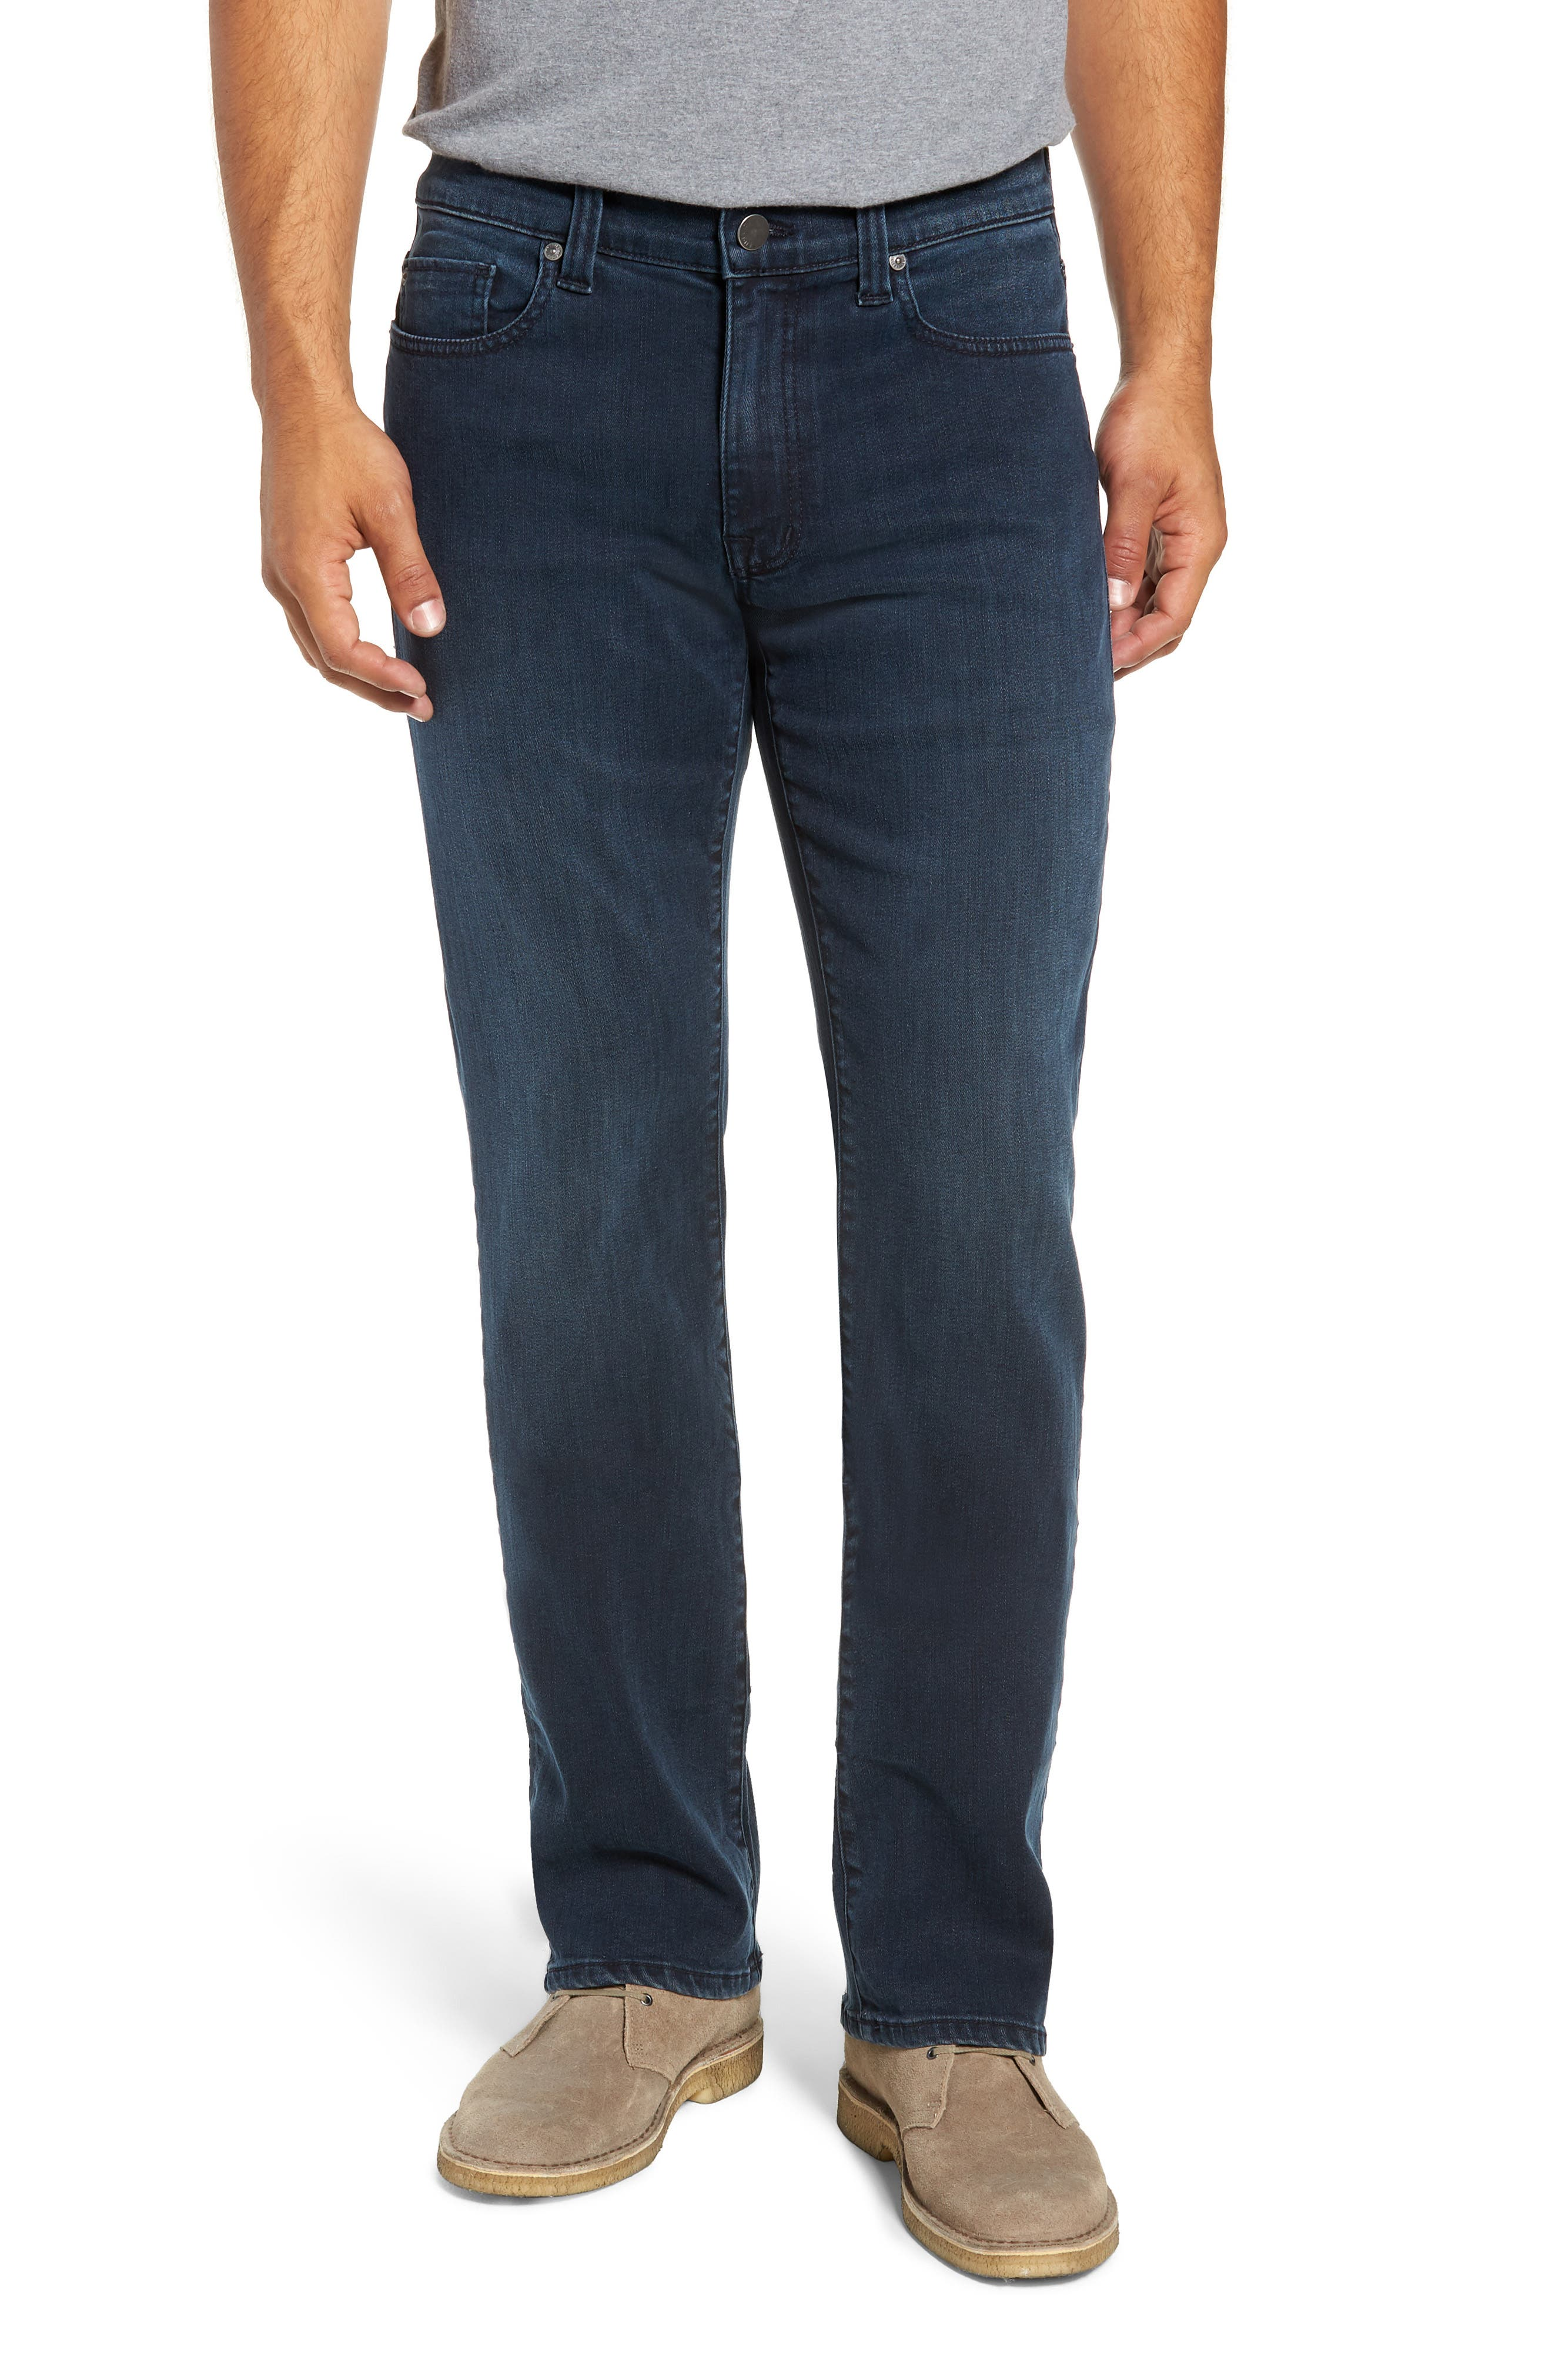 50-11 Relaxed Fit Jeans,                         Main,                         color, MILLI BLUE